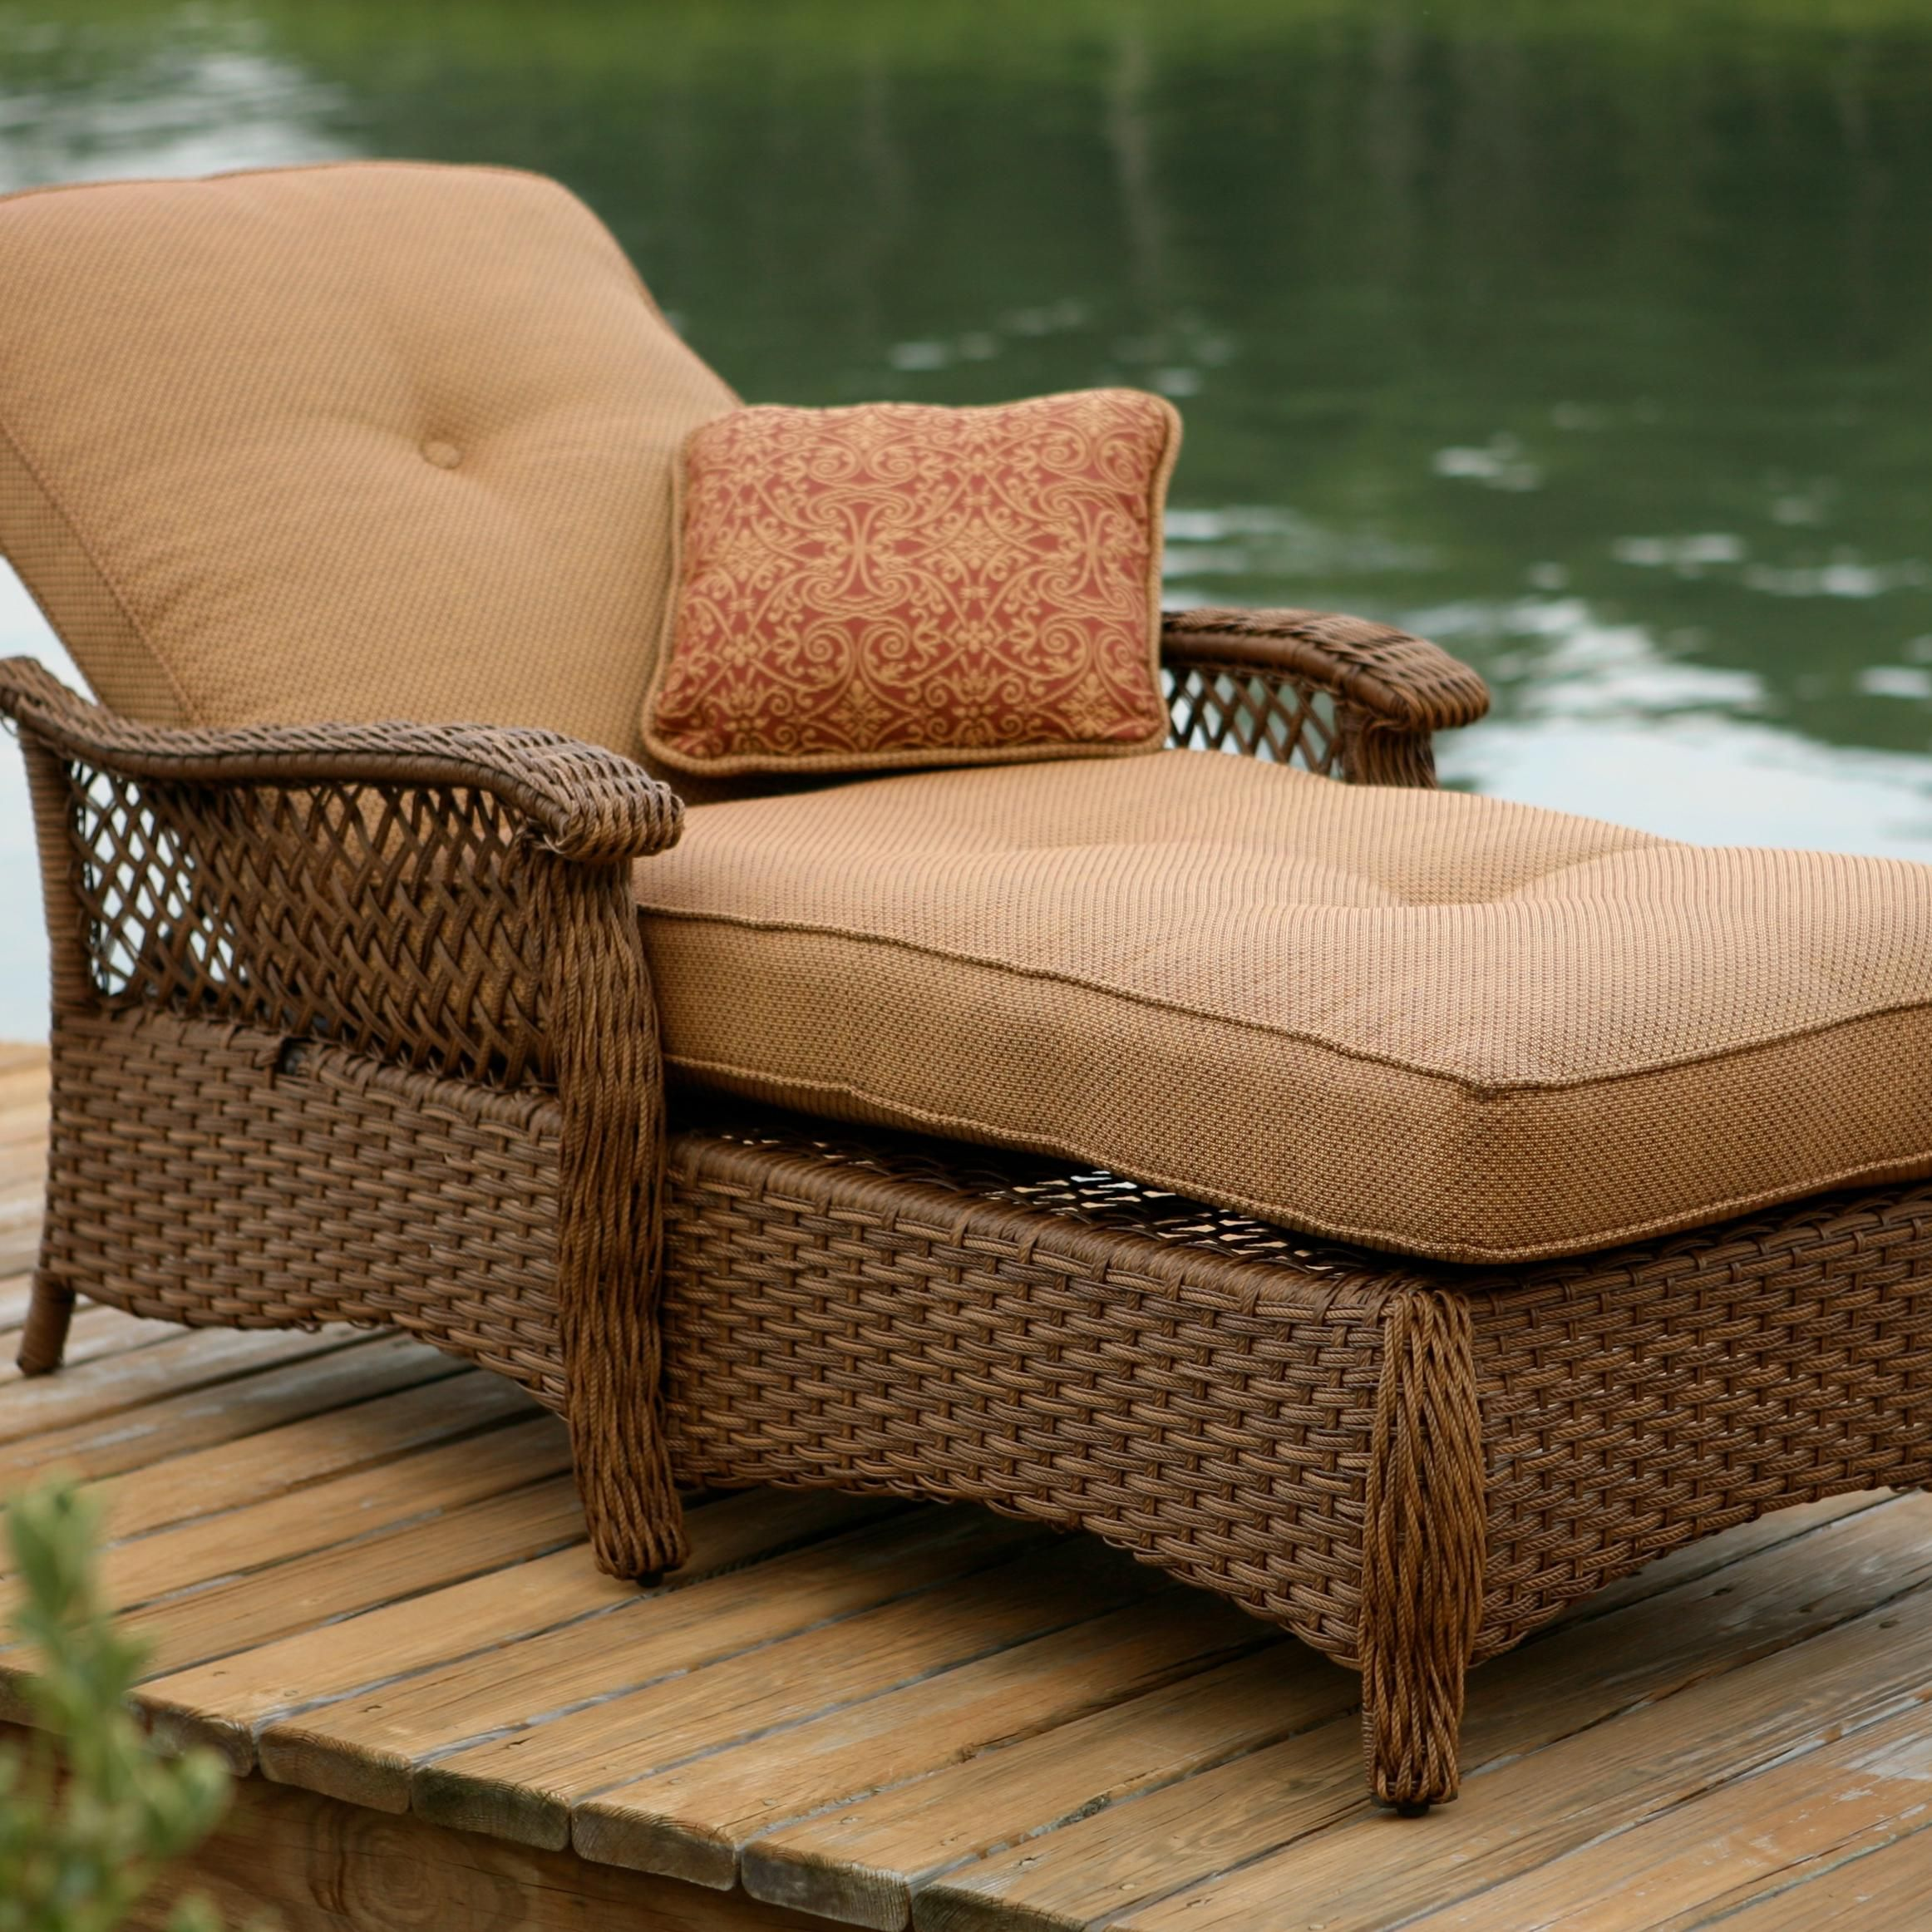 Veranda Agio Outdoor Woven Chaise Lounge By Agio Patio